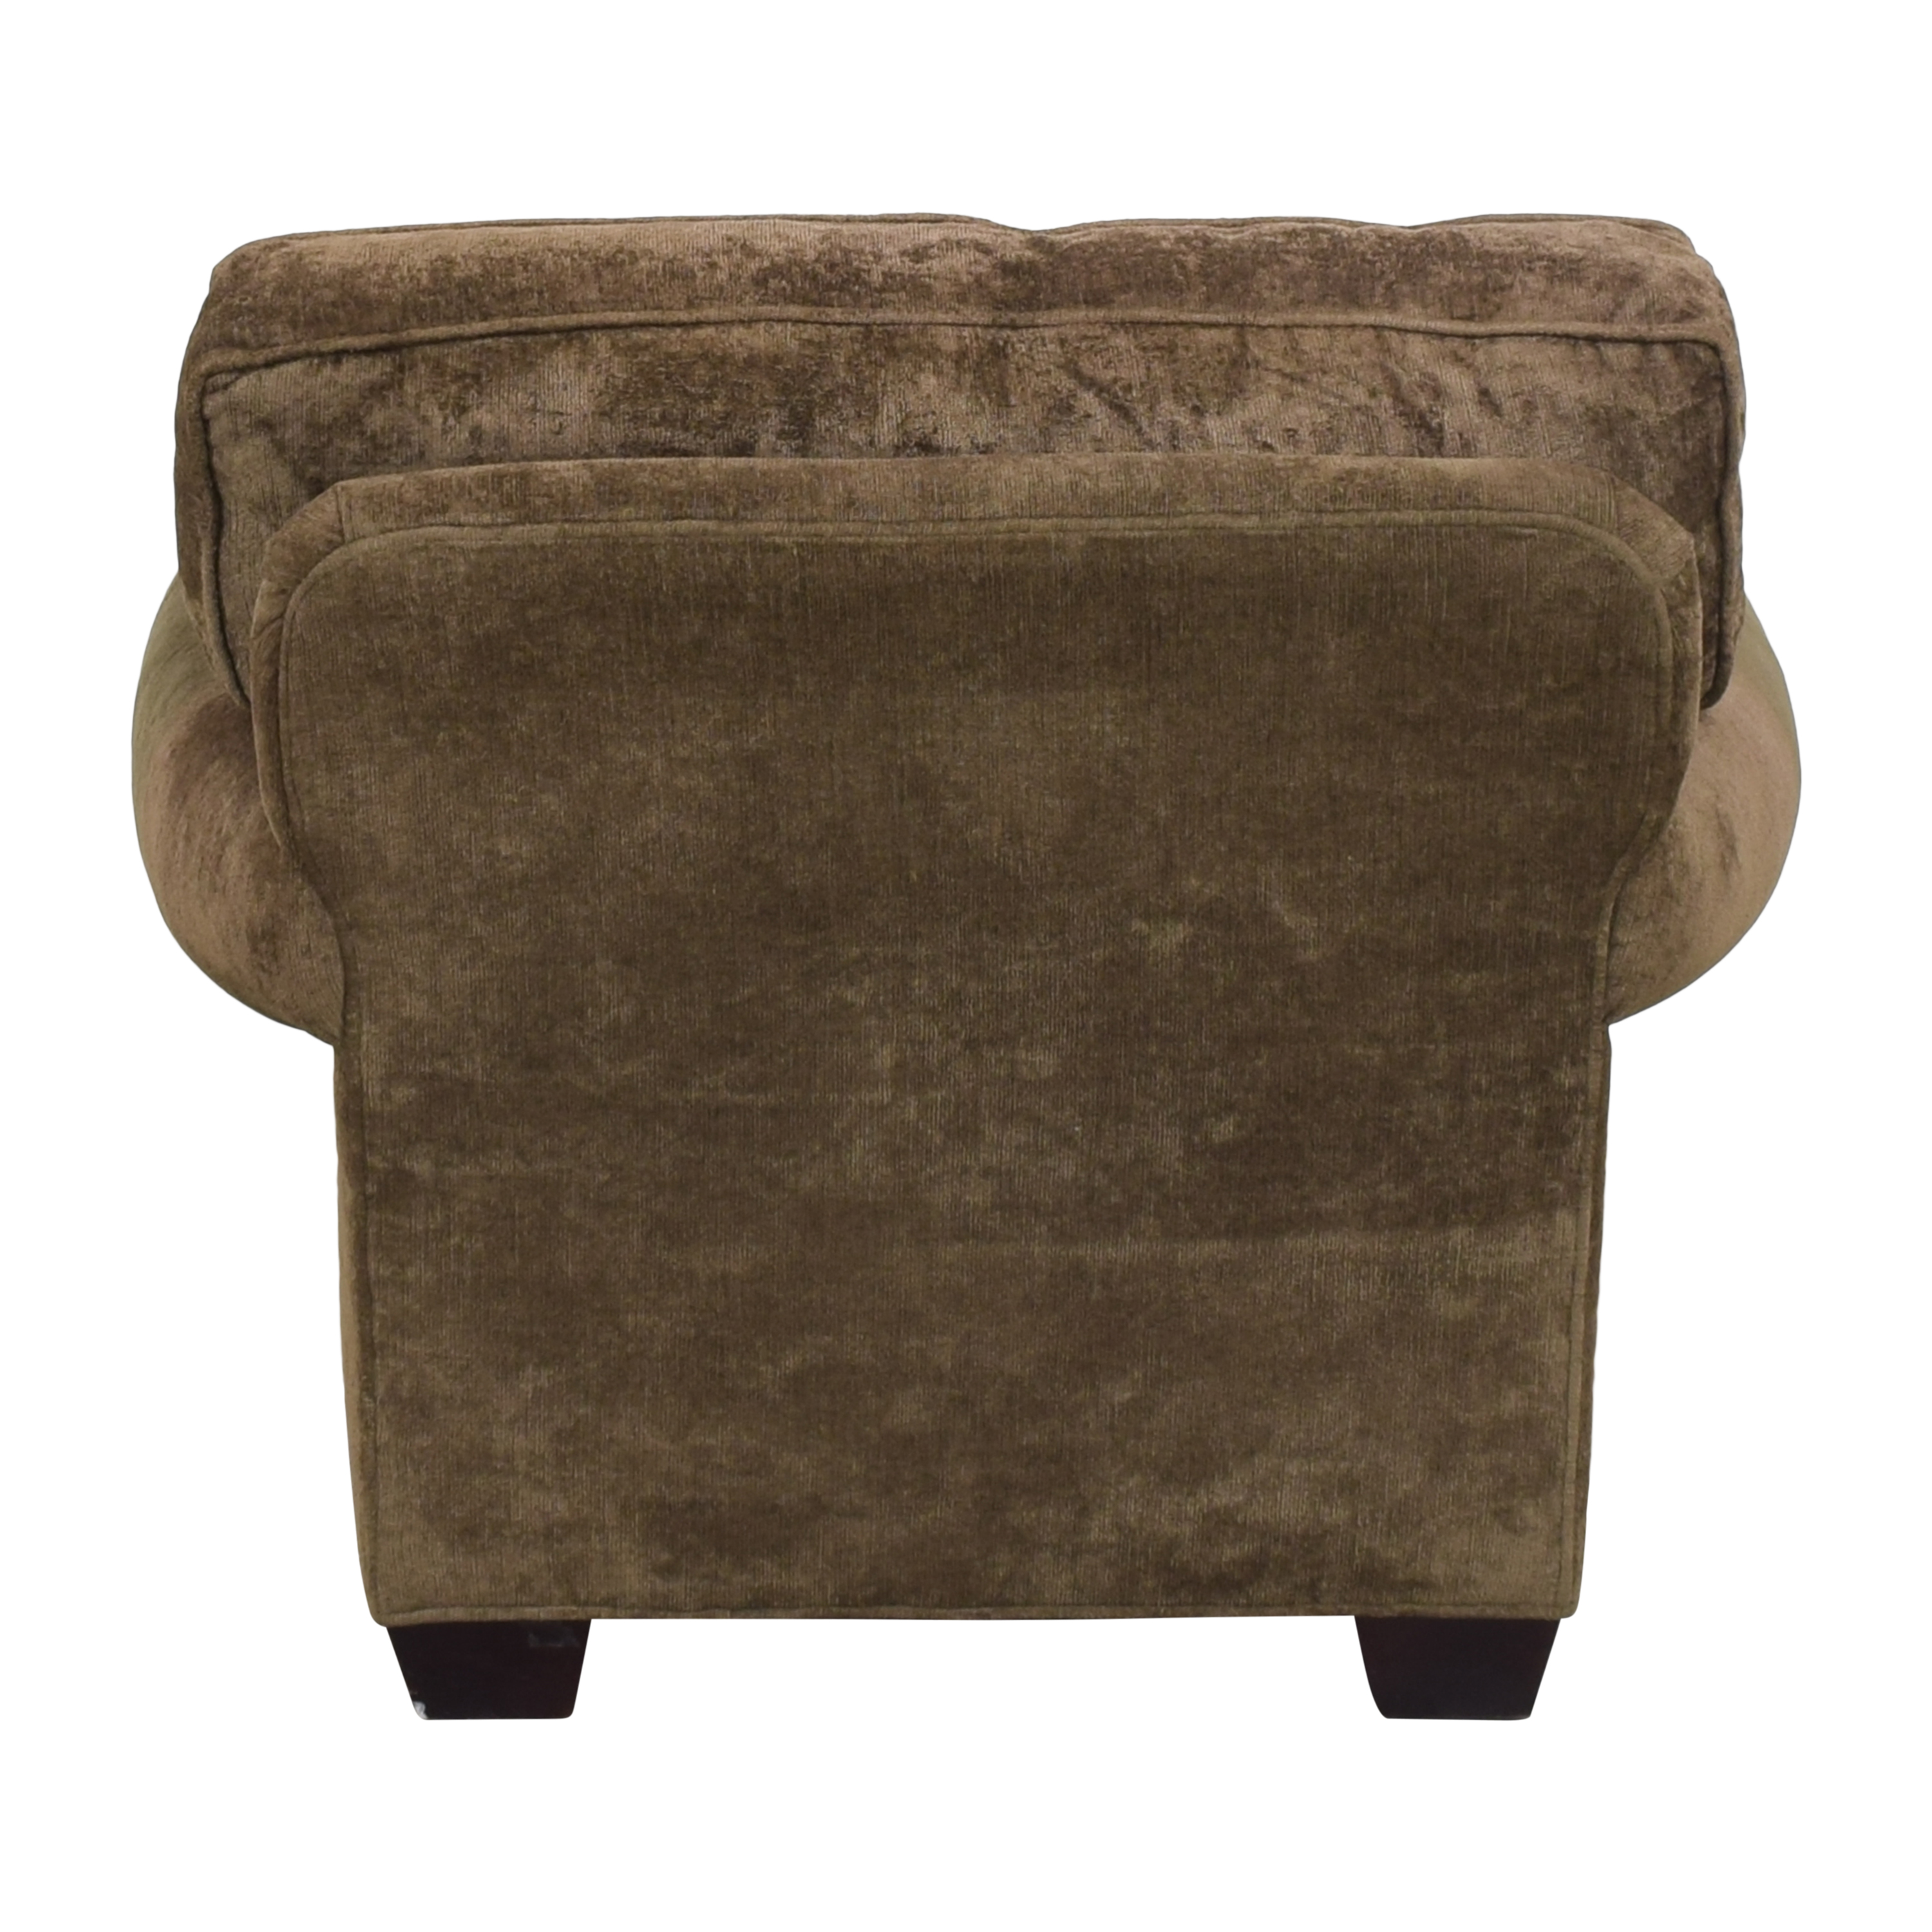 Crate & Barrel Crate & Barrel Arm Chair with Ottoman ct